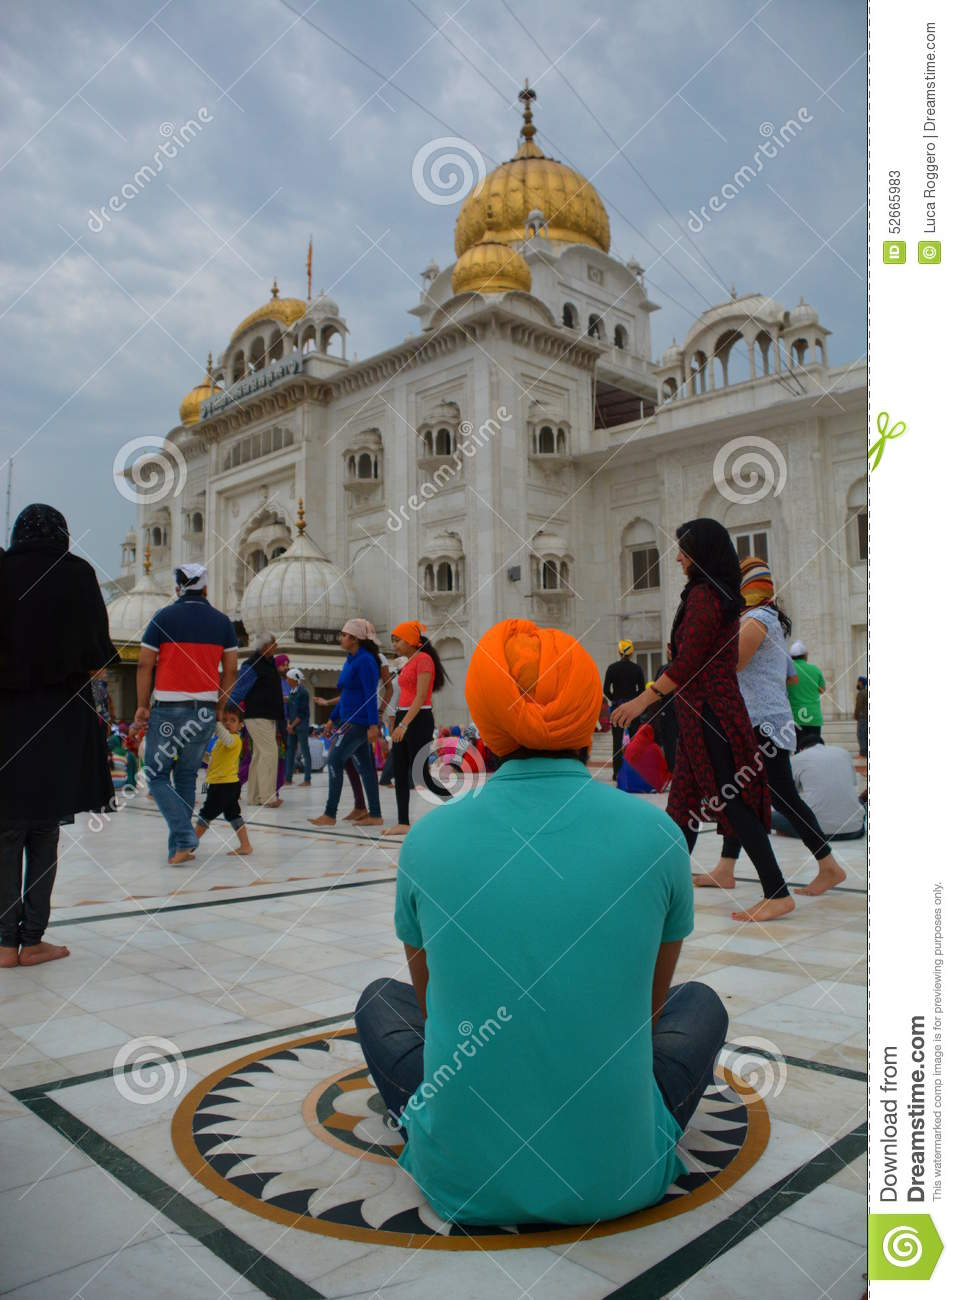 Gurdwara Bangla Sahib Temple Delhi India Most Prominent Sikh House Worship Situated Near Connaught Place New